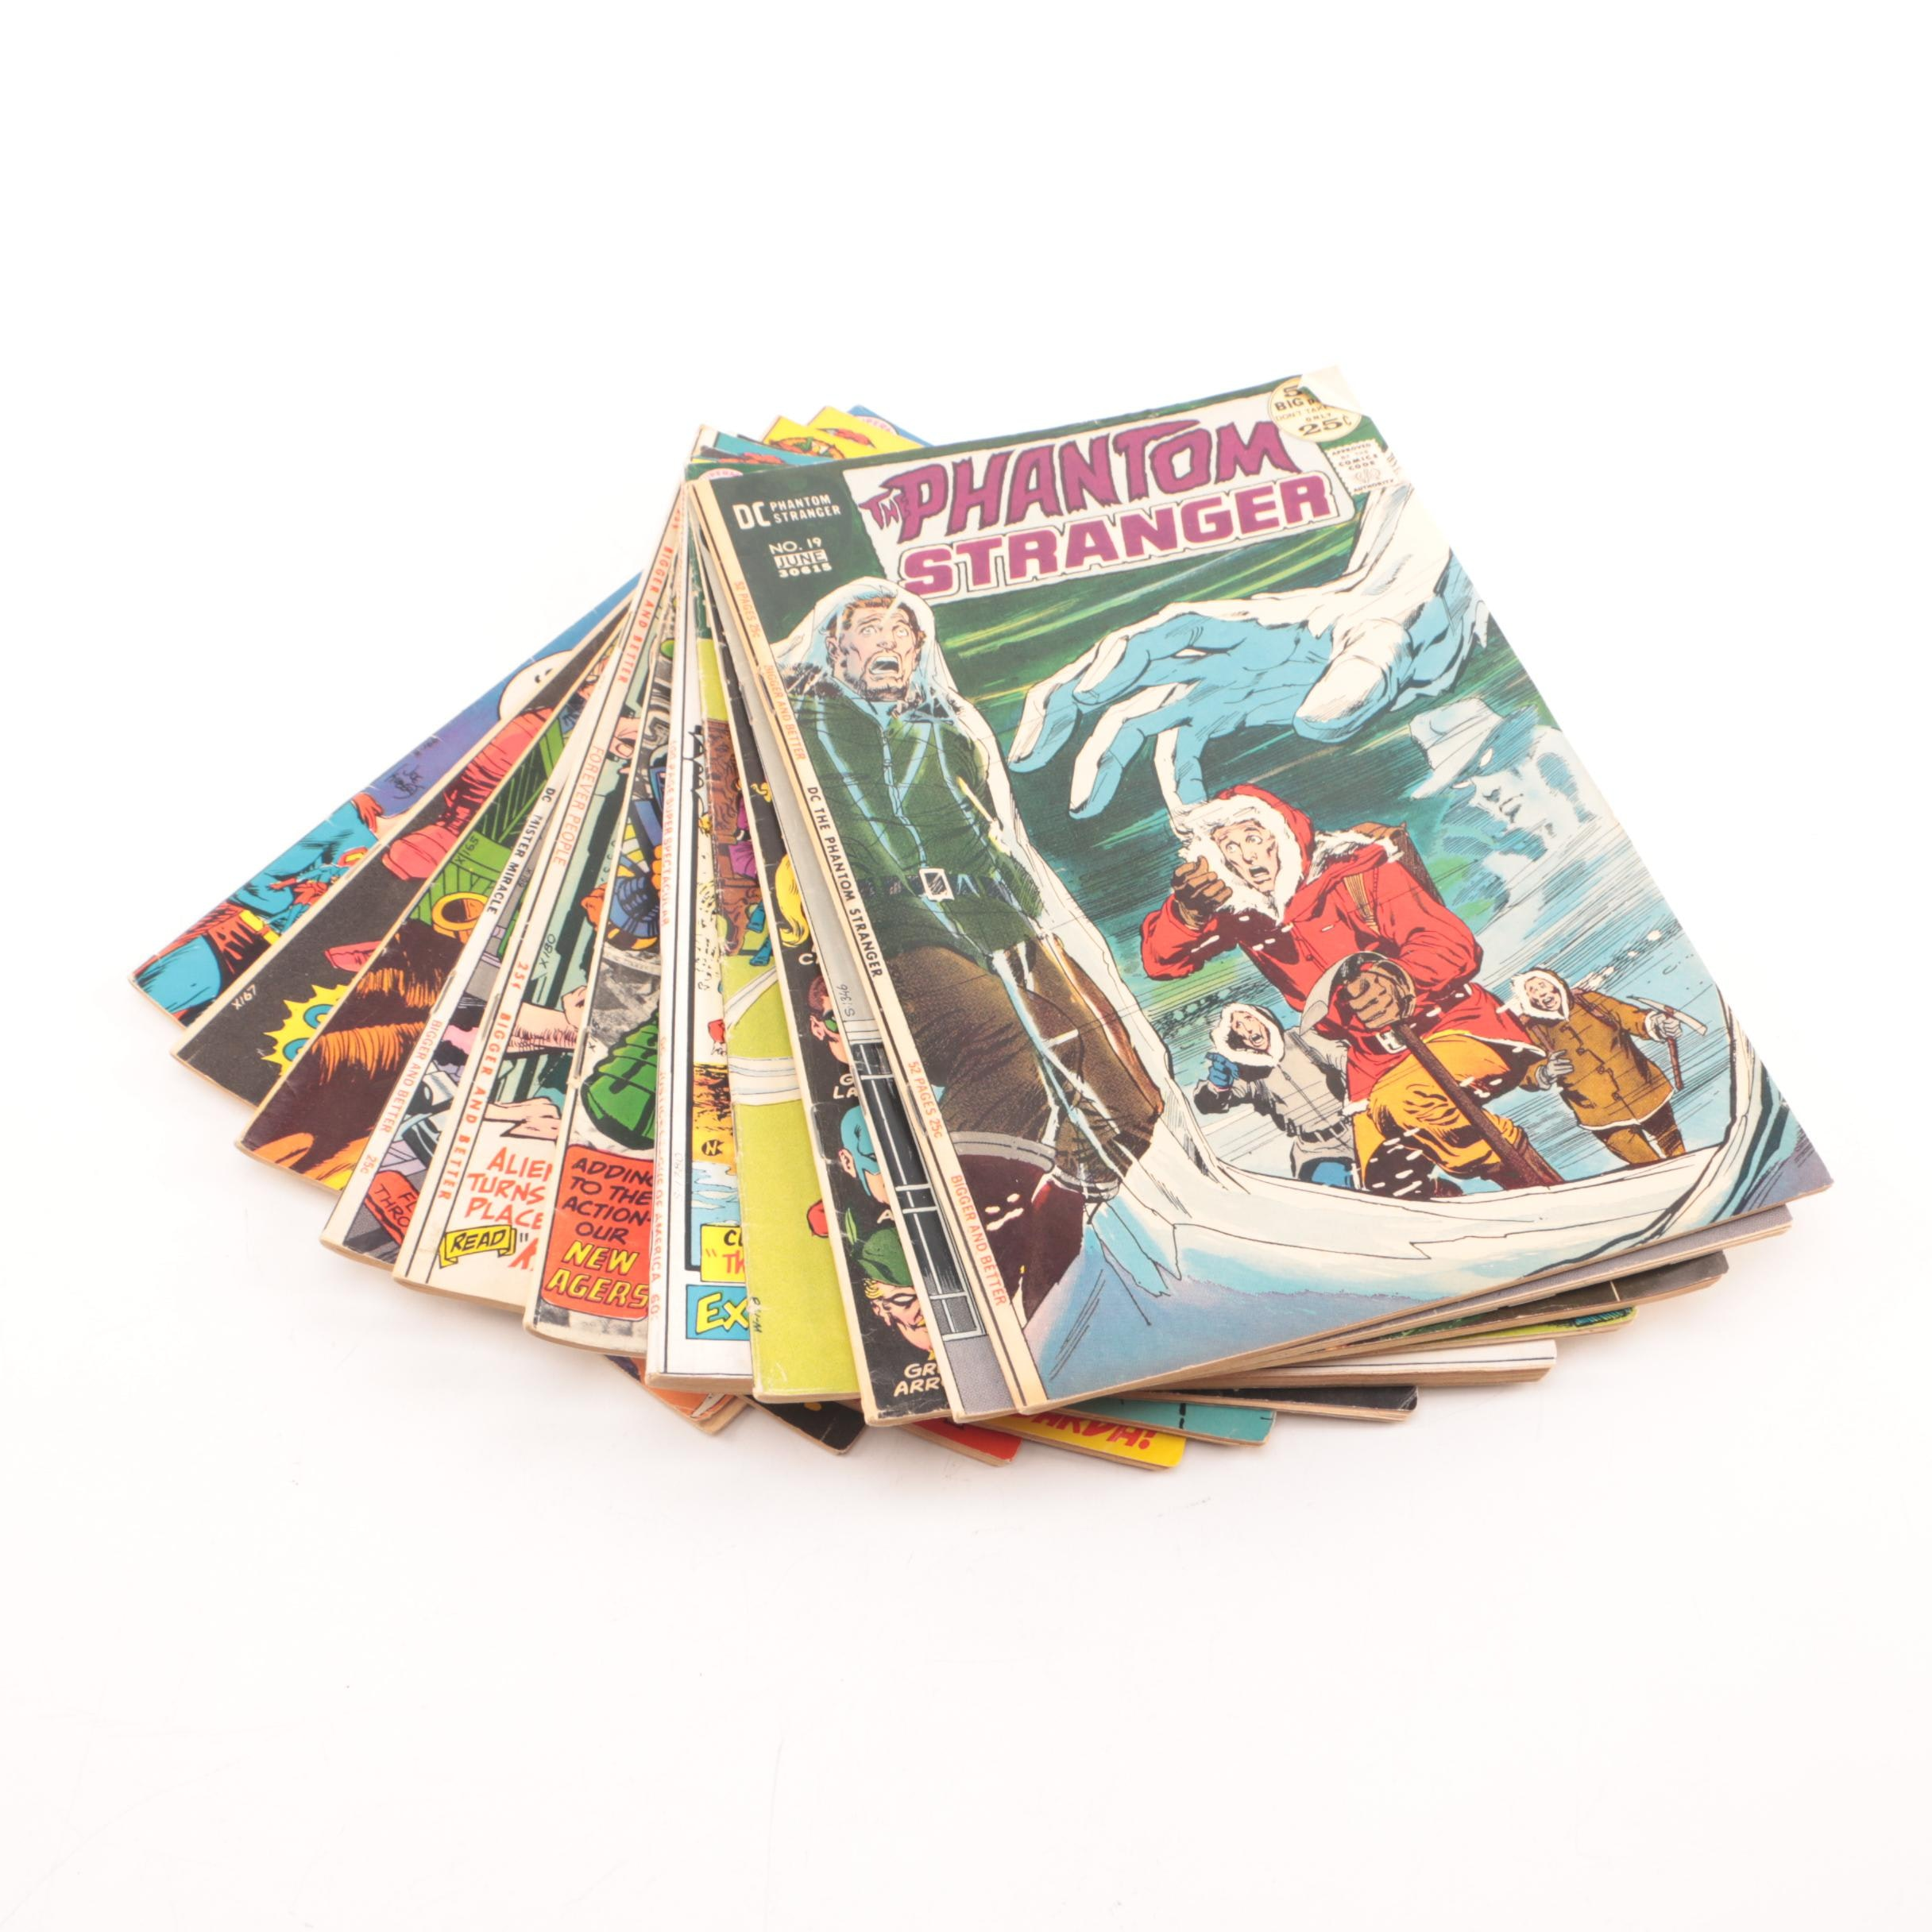 1960s-1970s DC Comic Books Including Justice League of America